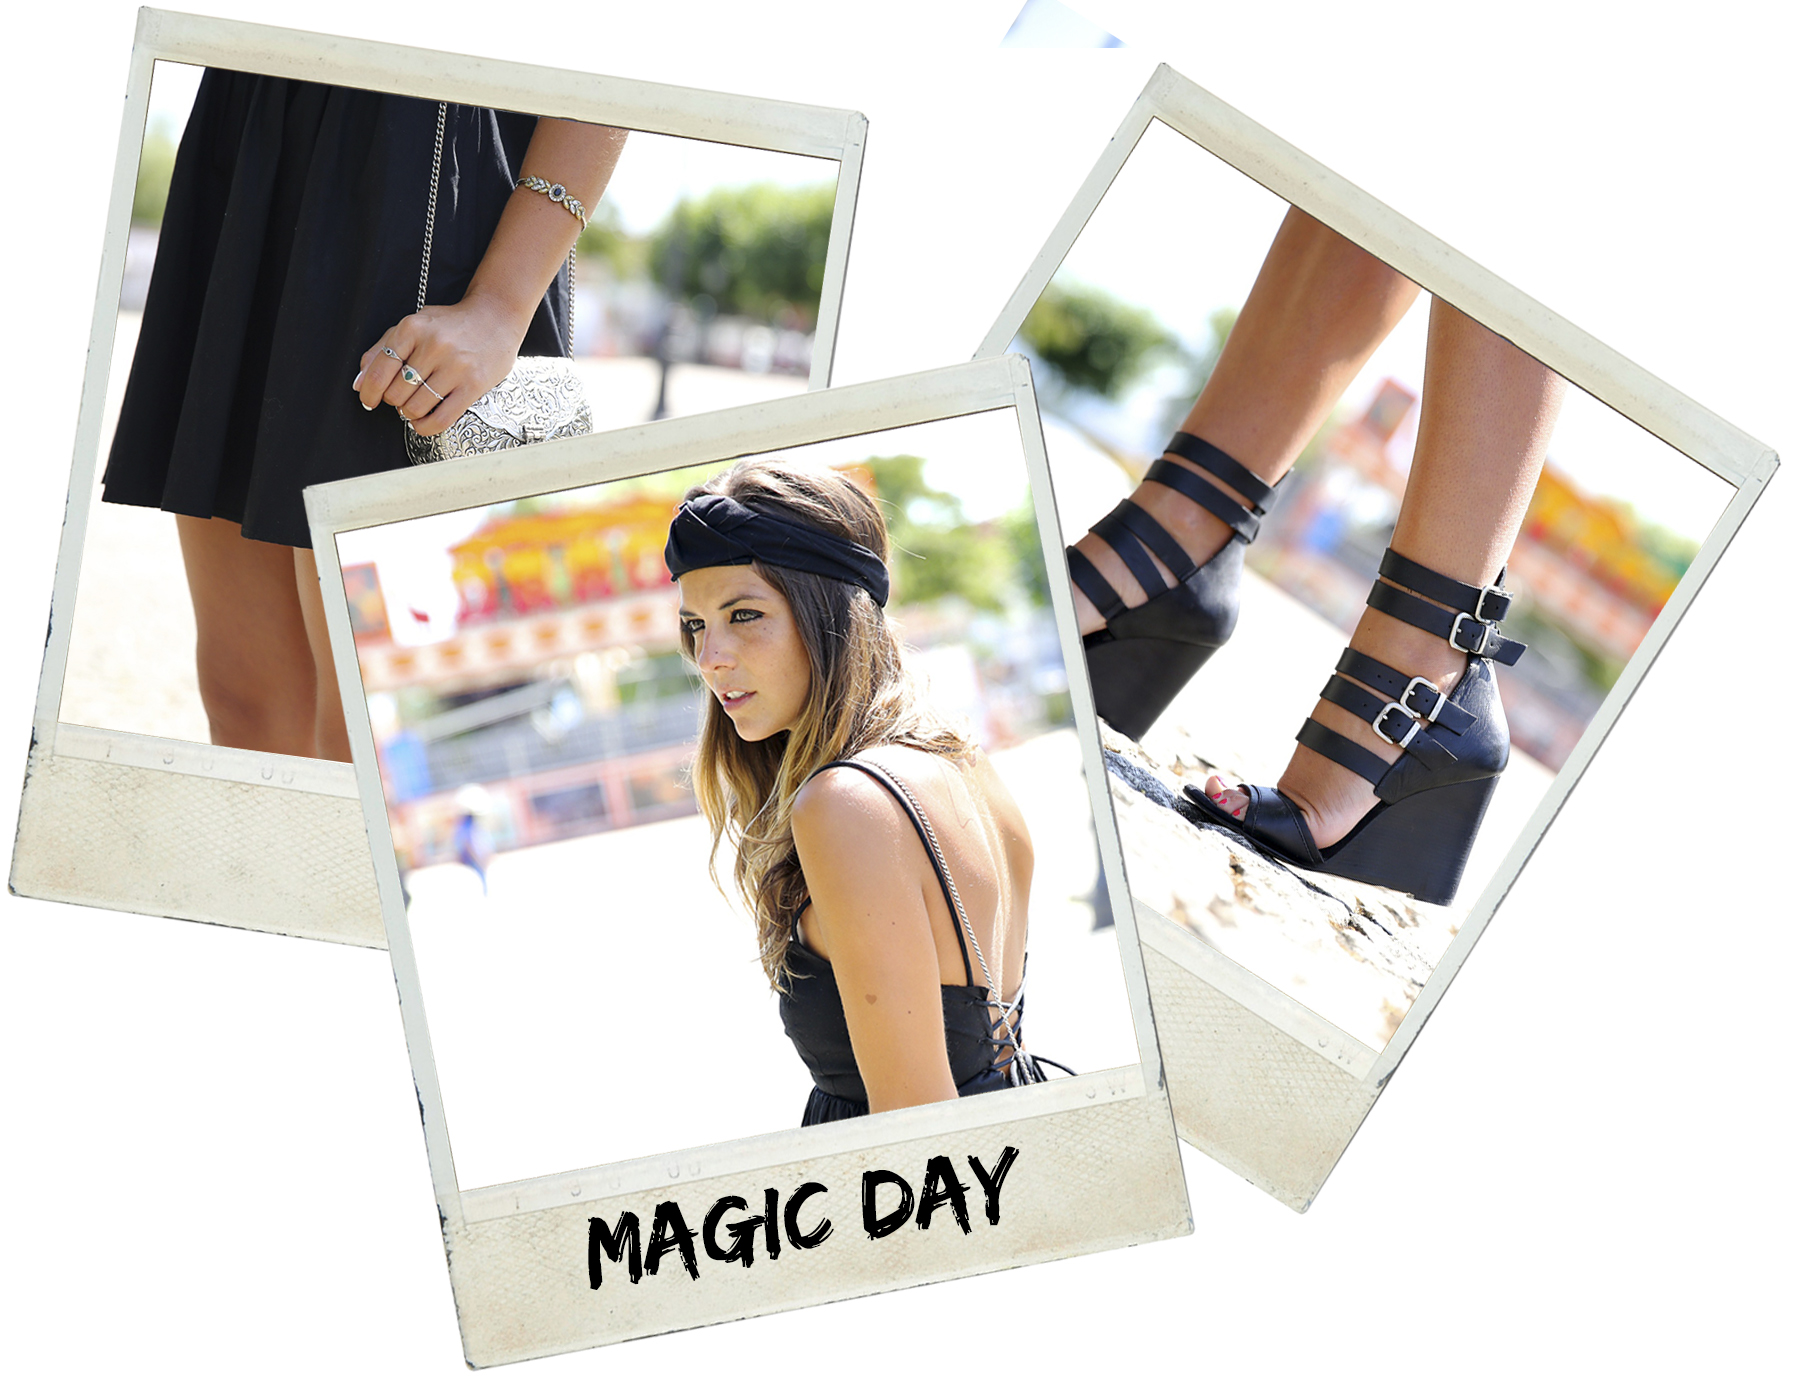 trendy_taste-look-outfit-street_style-blog-blogger-fashion_spain-moda_españa-maje-black_dress-vestido_negro-espalda_abierta-sandalias-silver_bag-bolso_plata-o_grove-galicia-turbante-turban-polaroid